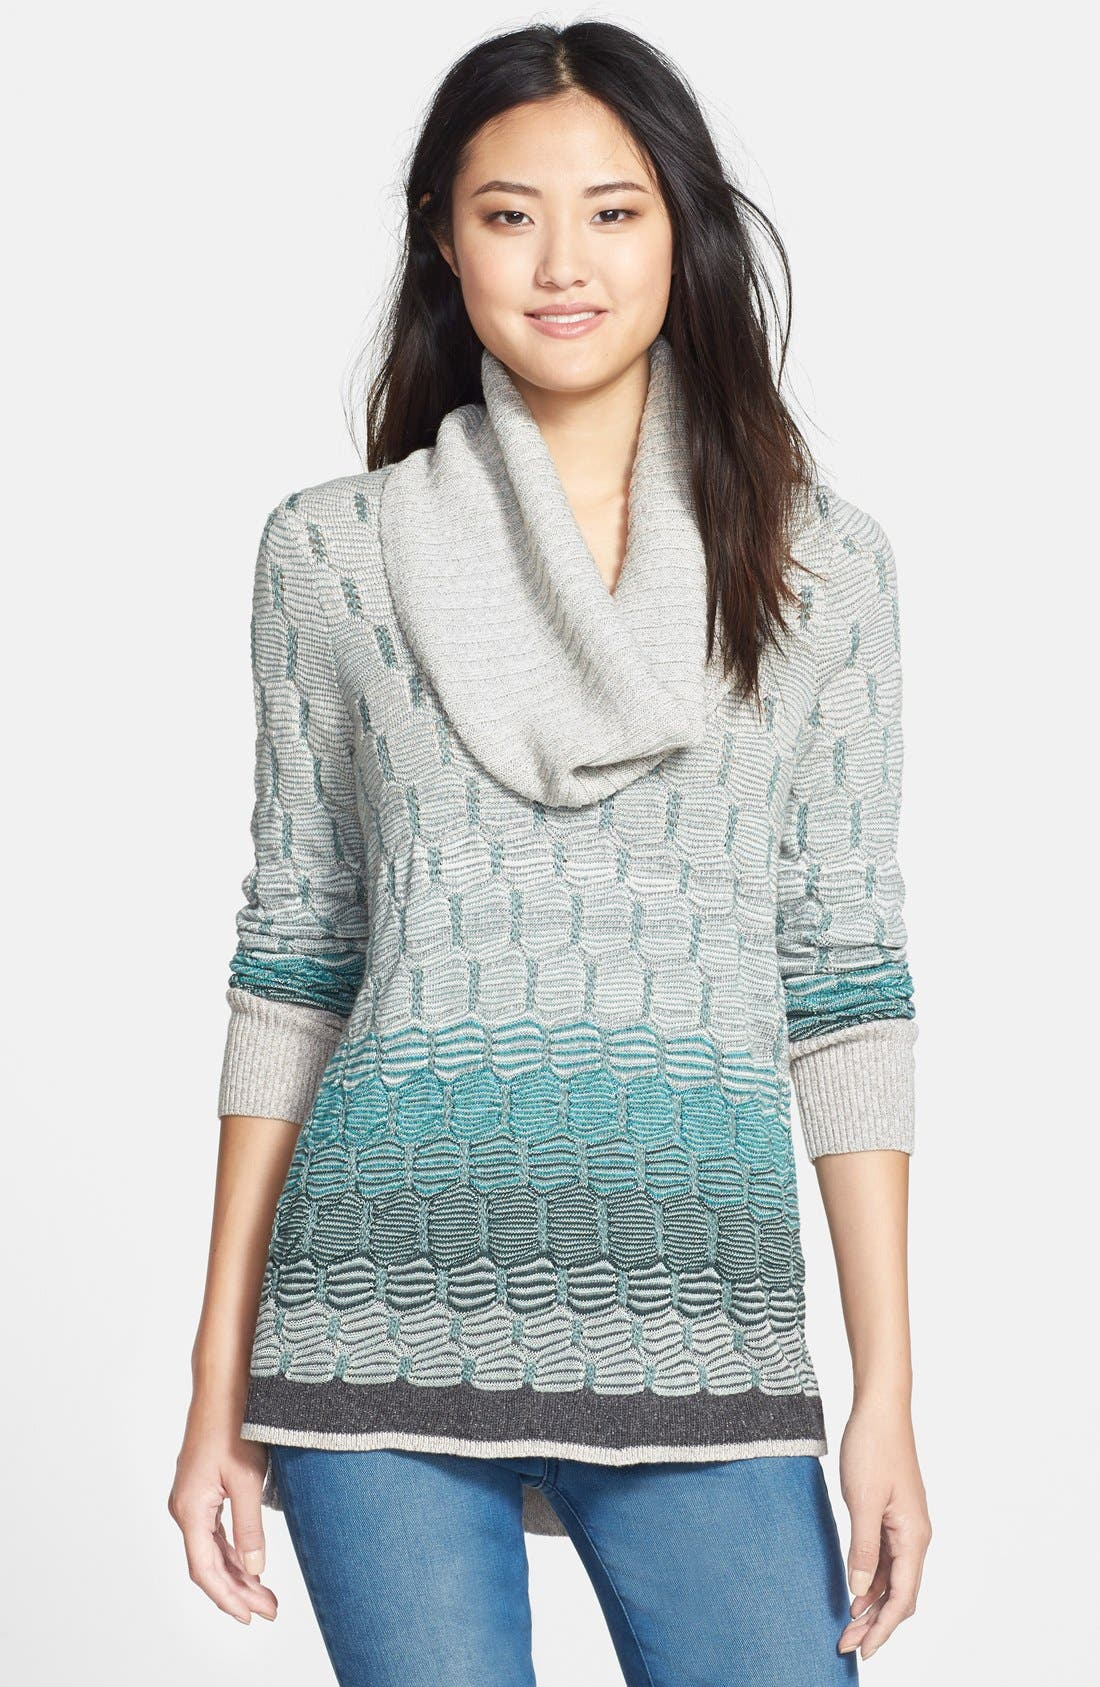 Alternate Image 1 Selected - NIC+ZOE Textured Ombré Sweater with Removable Cowl (Regular & Petite)